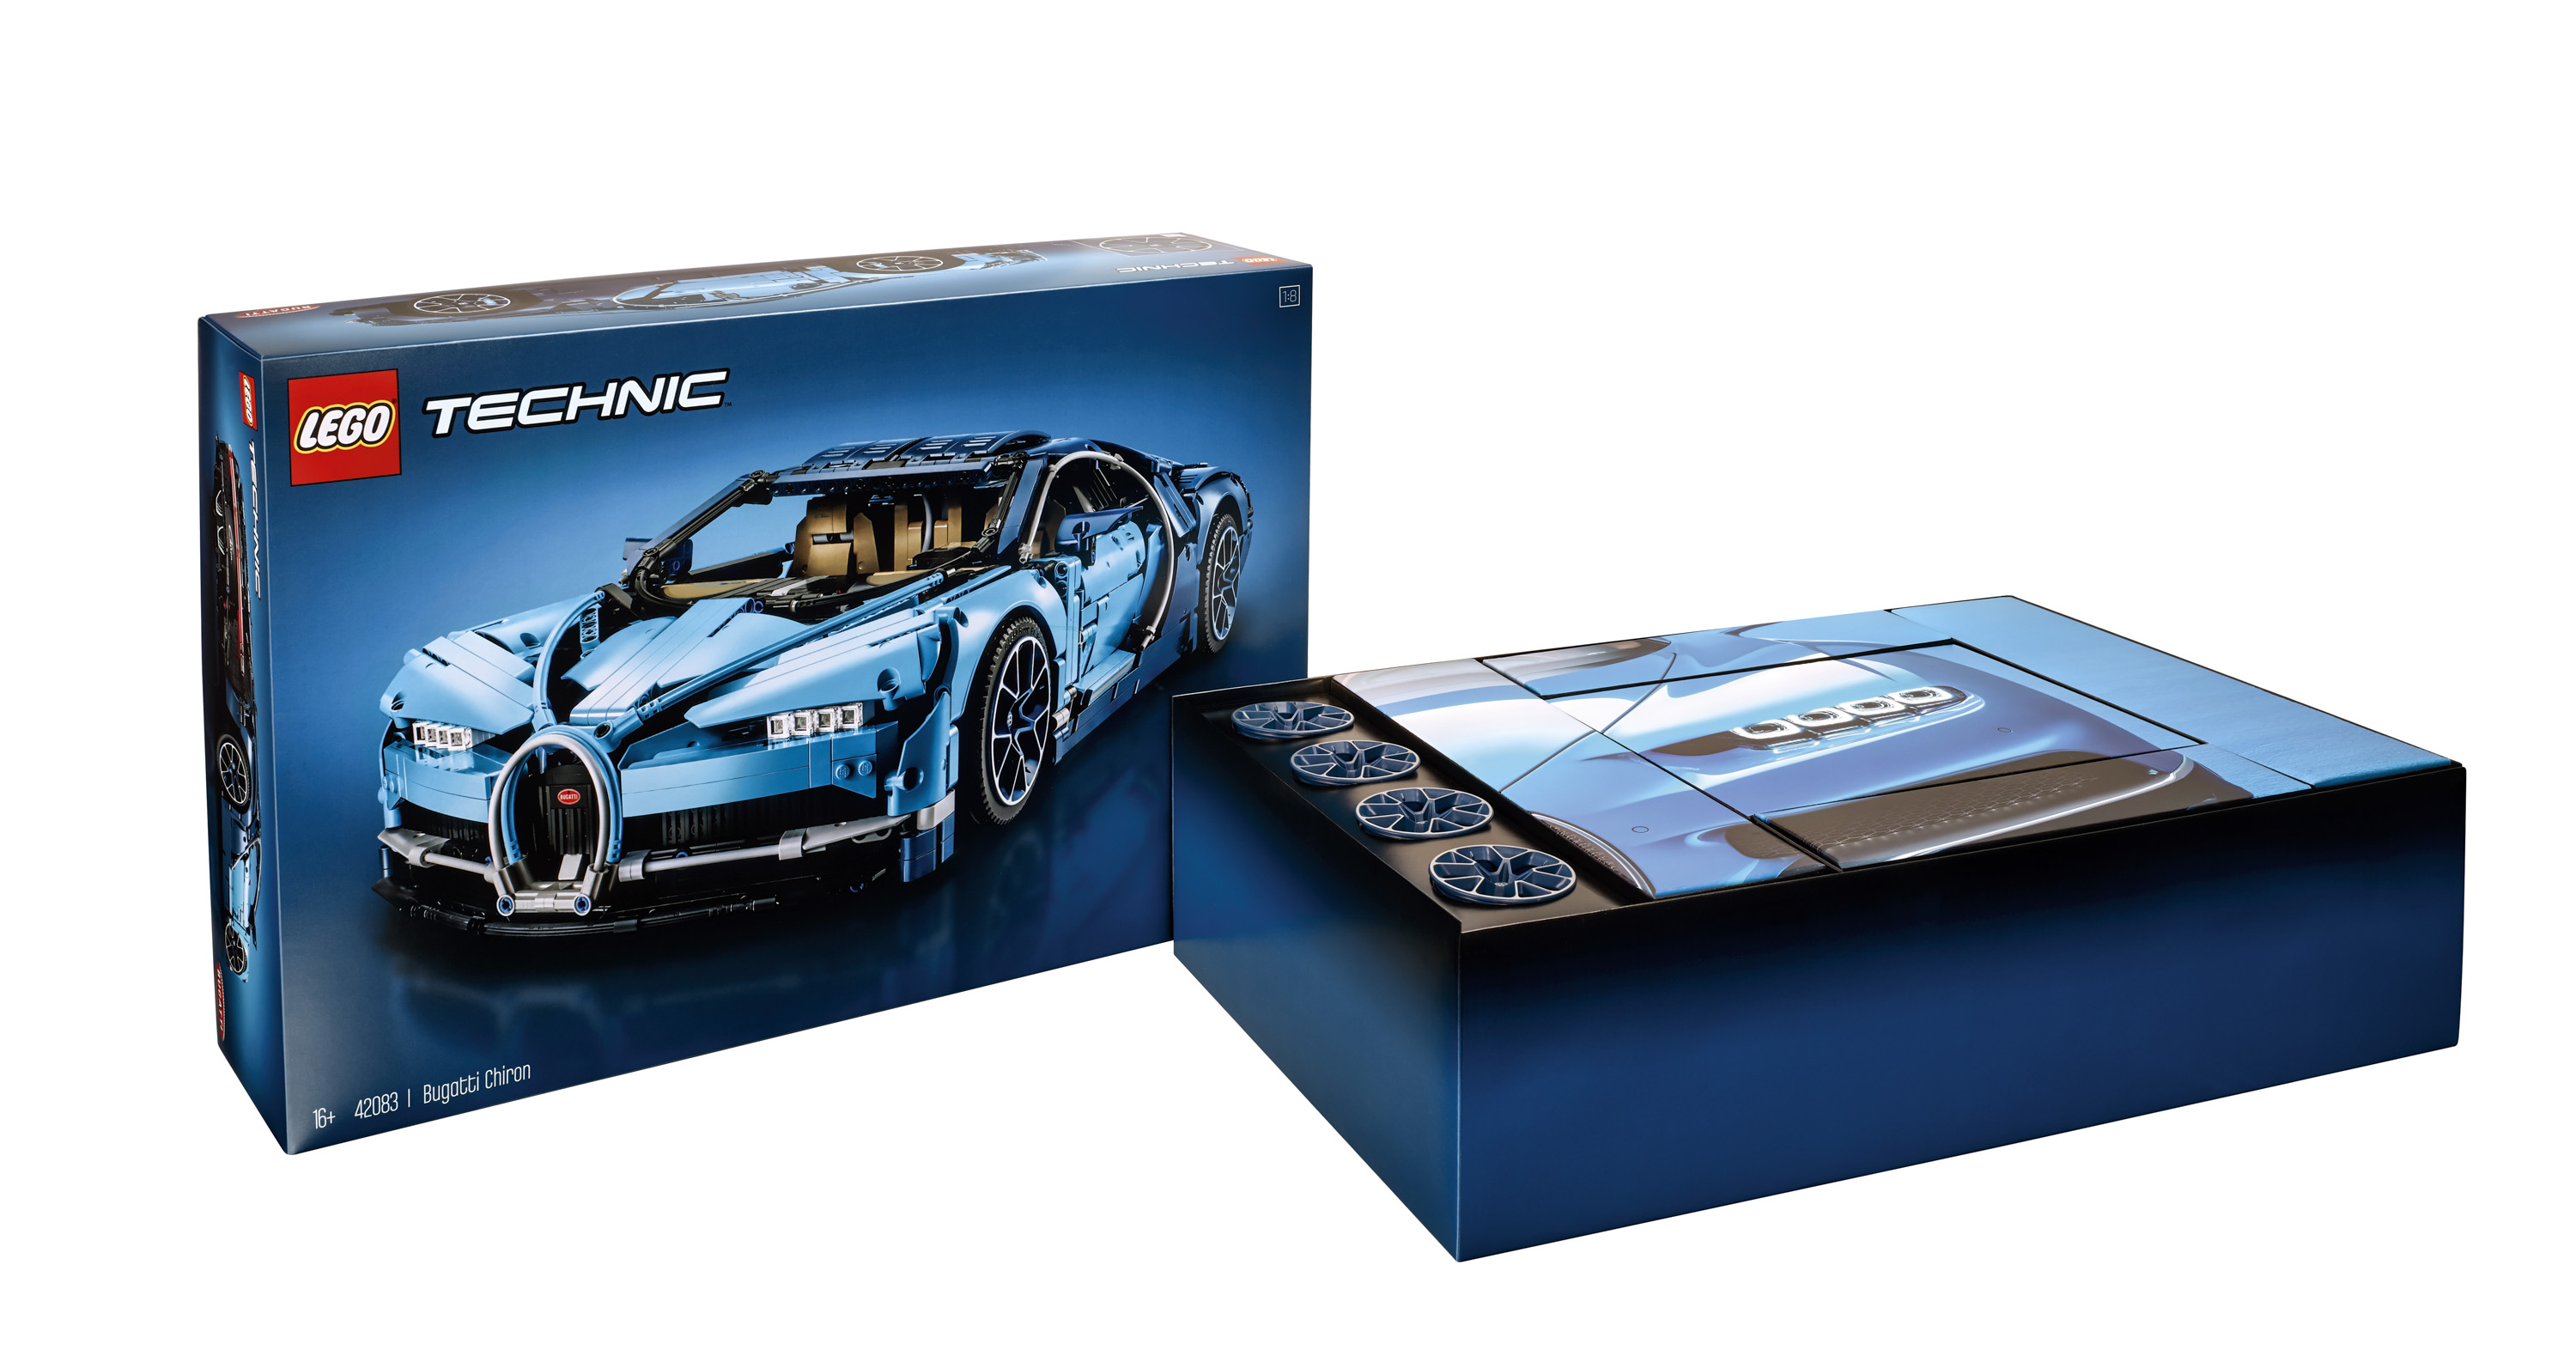 The Lego Technic Bugatti Chiron Is So Precisely Detailed